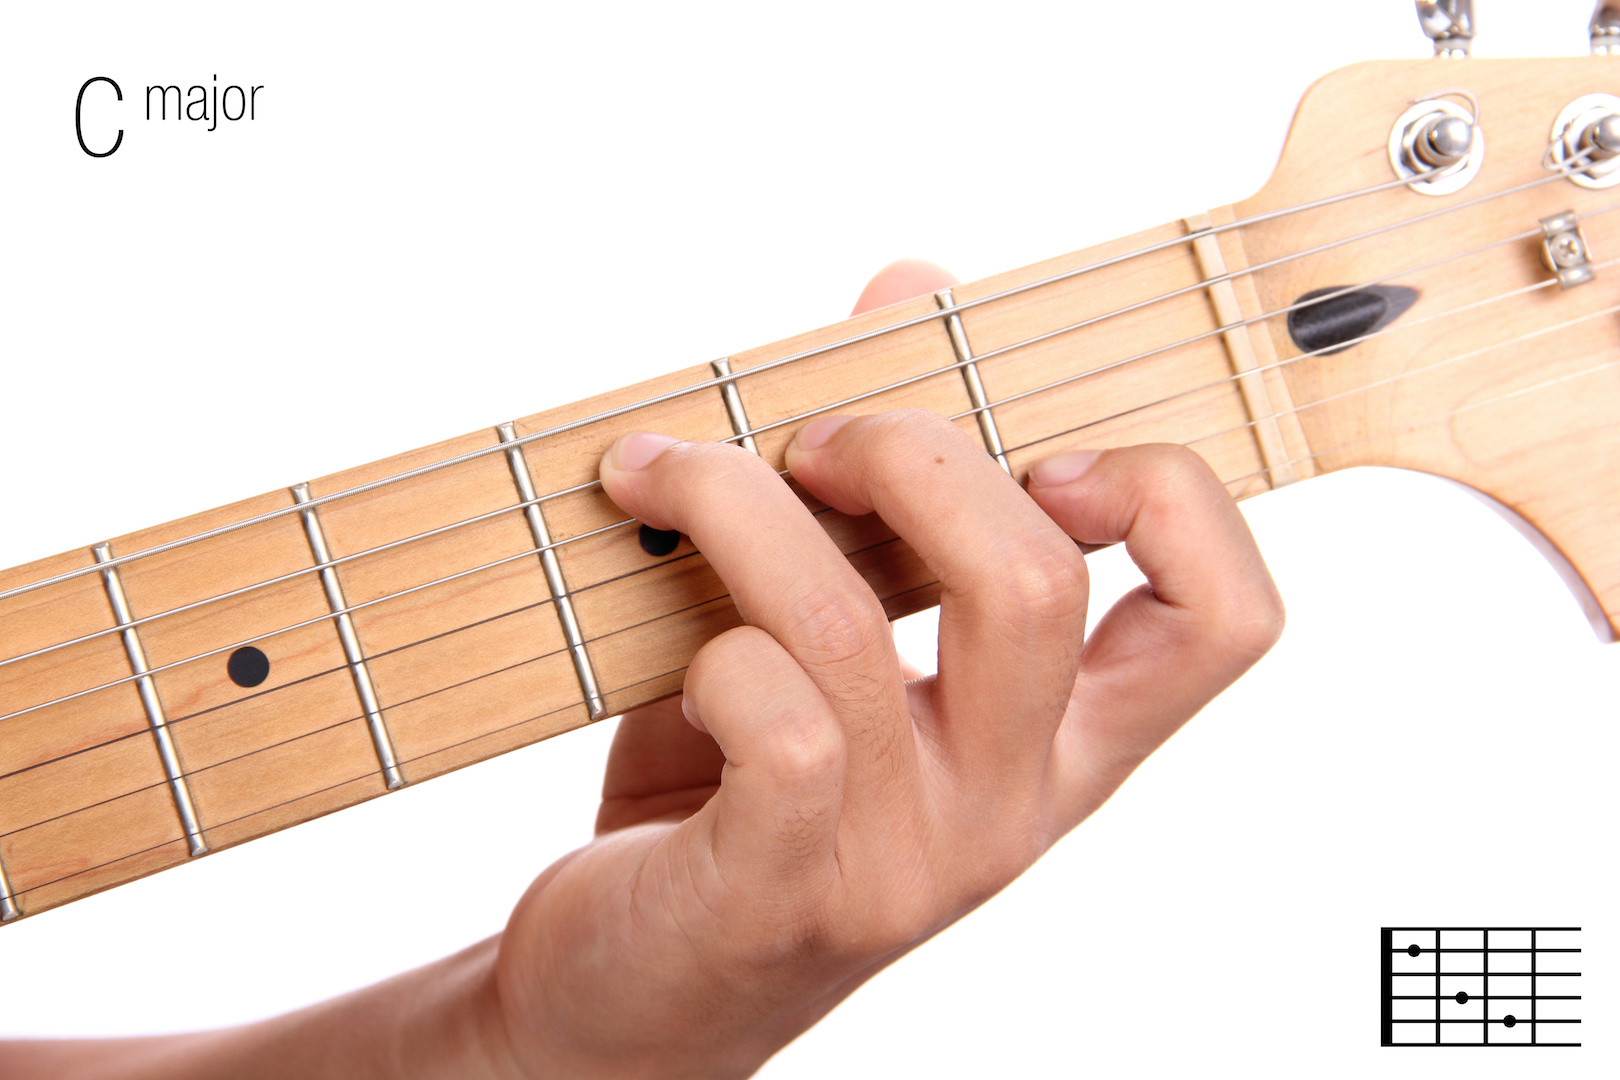 C Chord Guitar C Chord On Guitar History Chord Shapes Major Scale Songs Etc